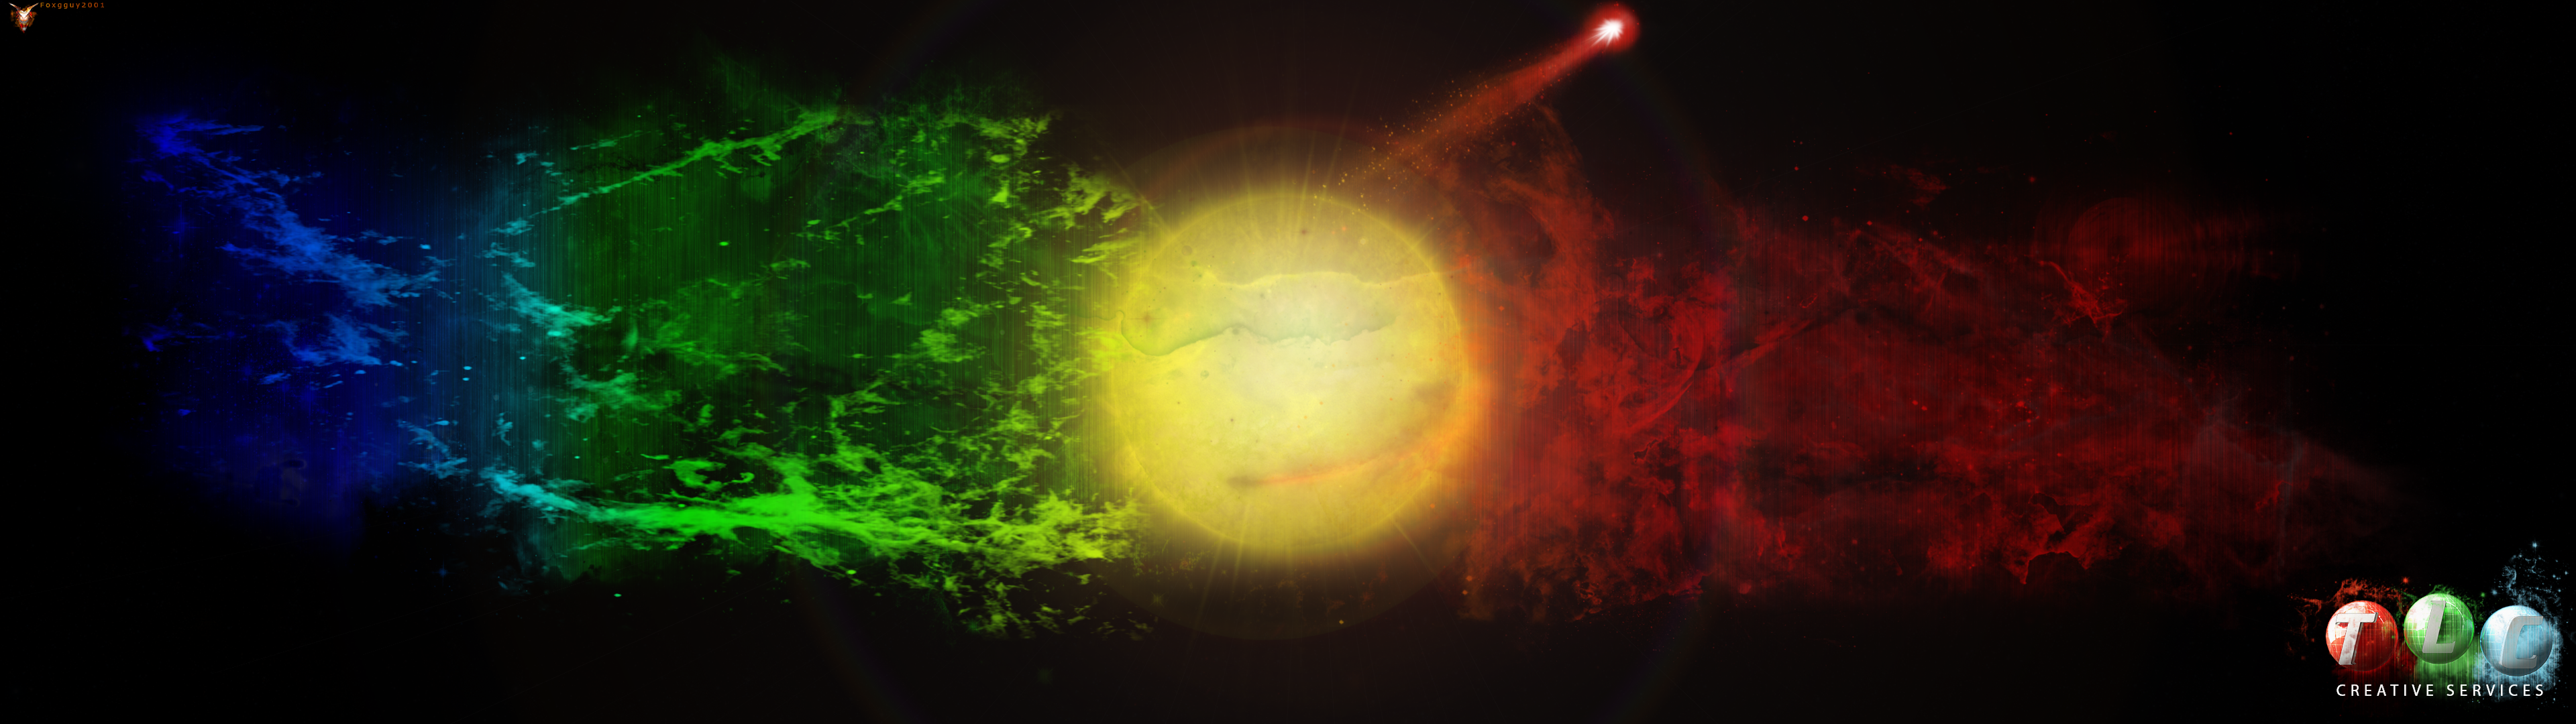 Space Spectrum Dual Monitor Wallpaper By Foxgguy2001 On